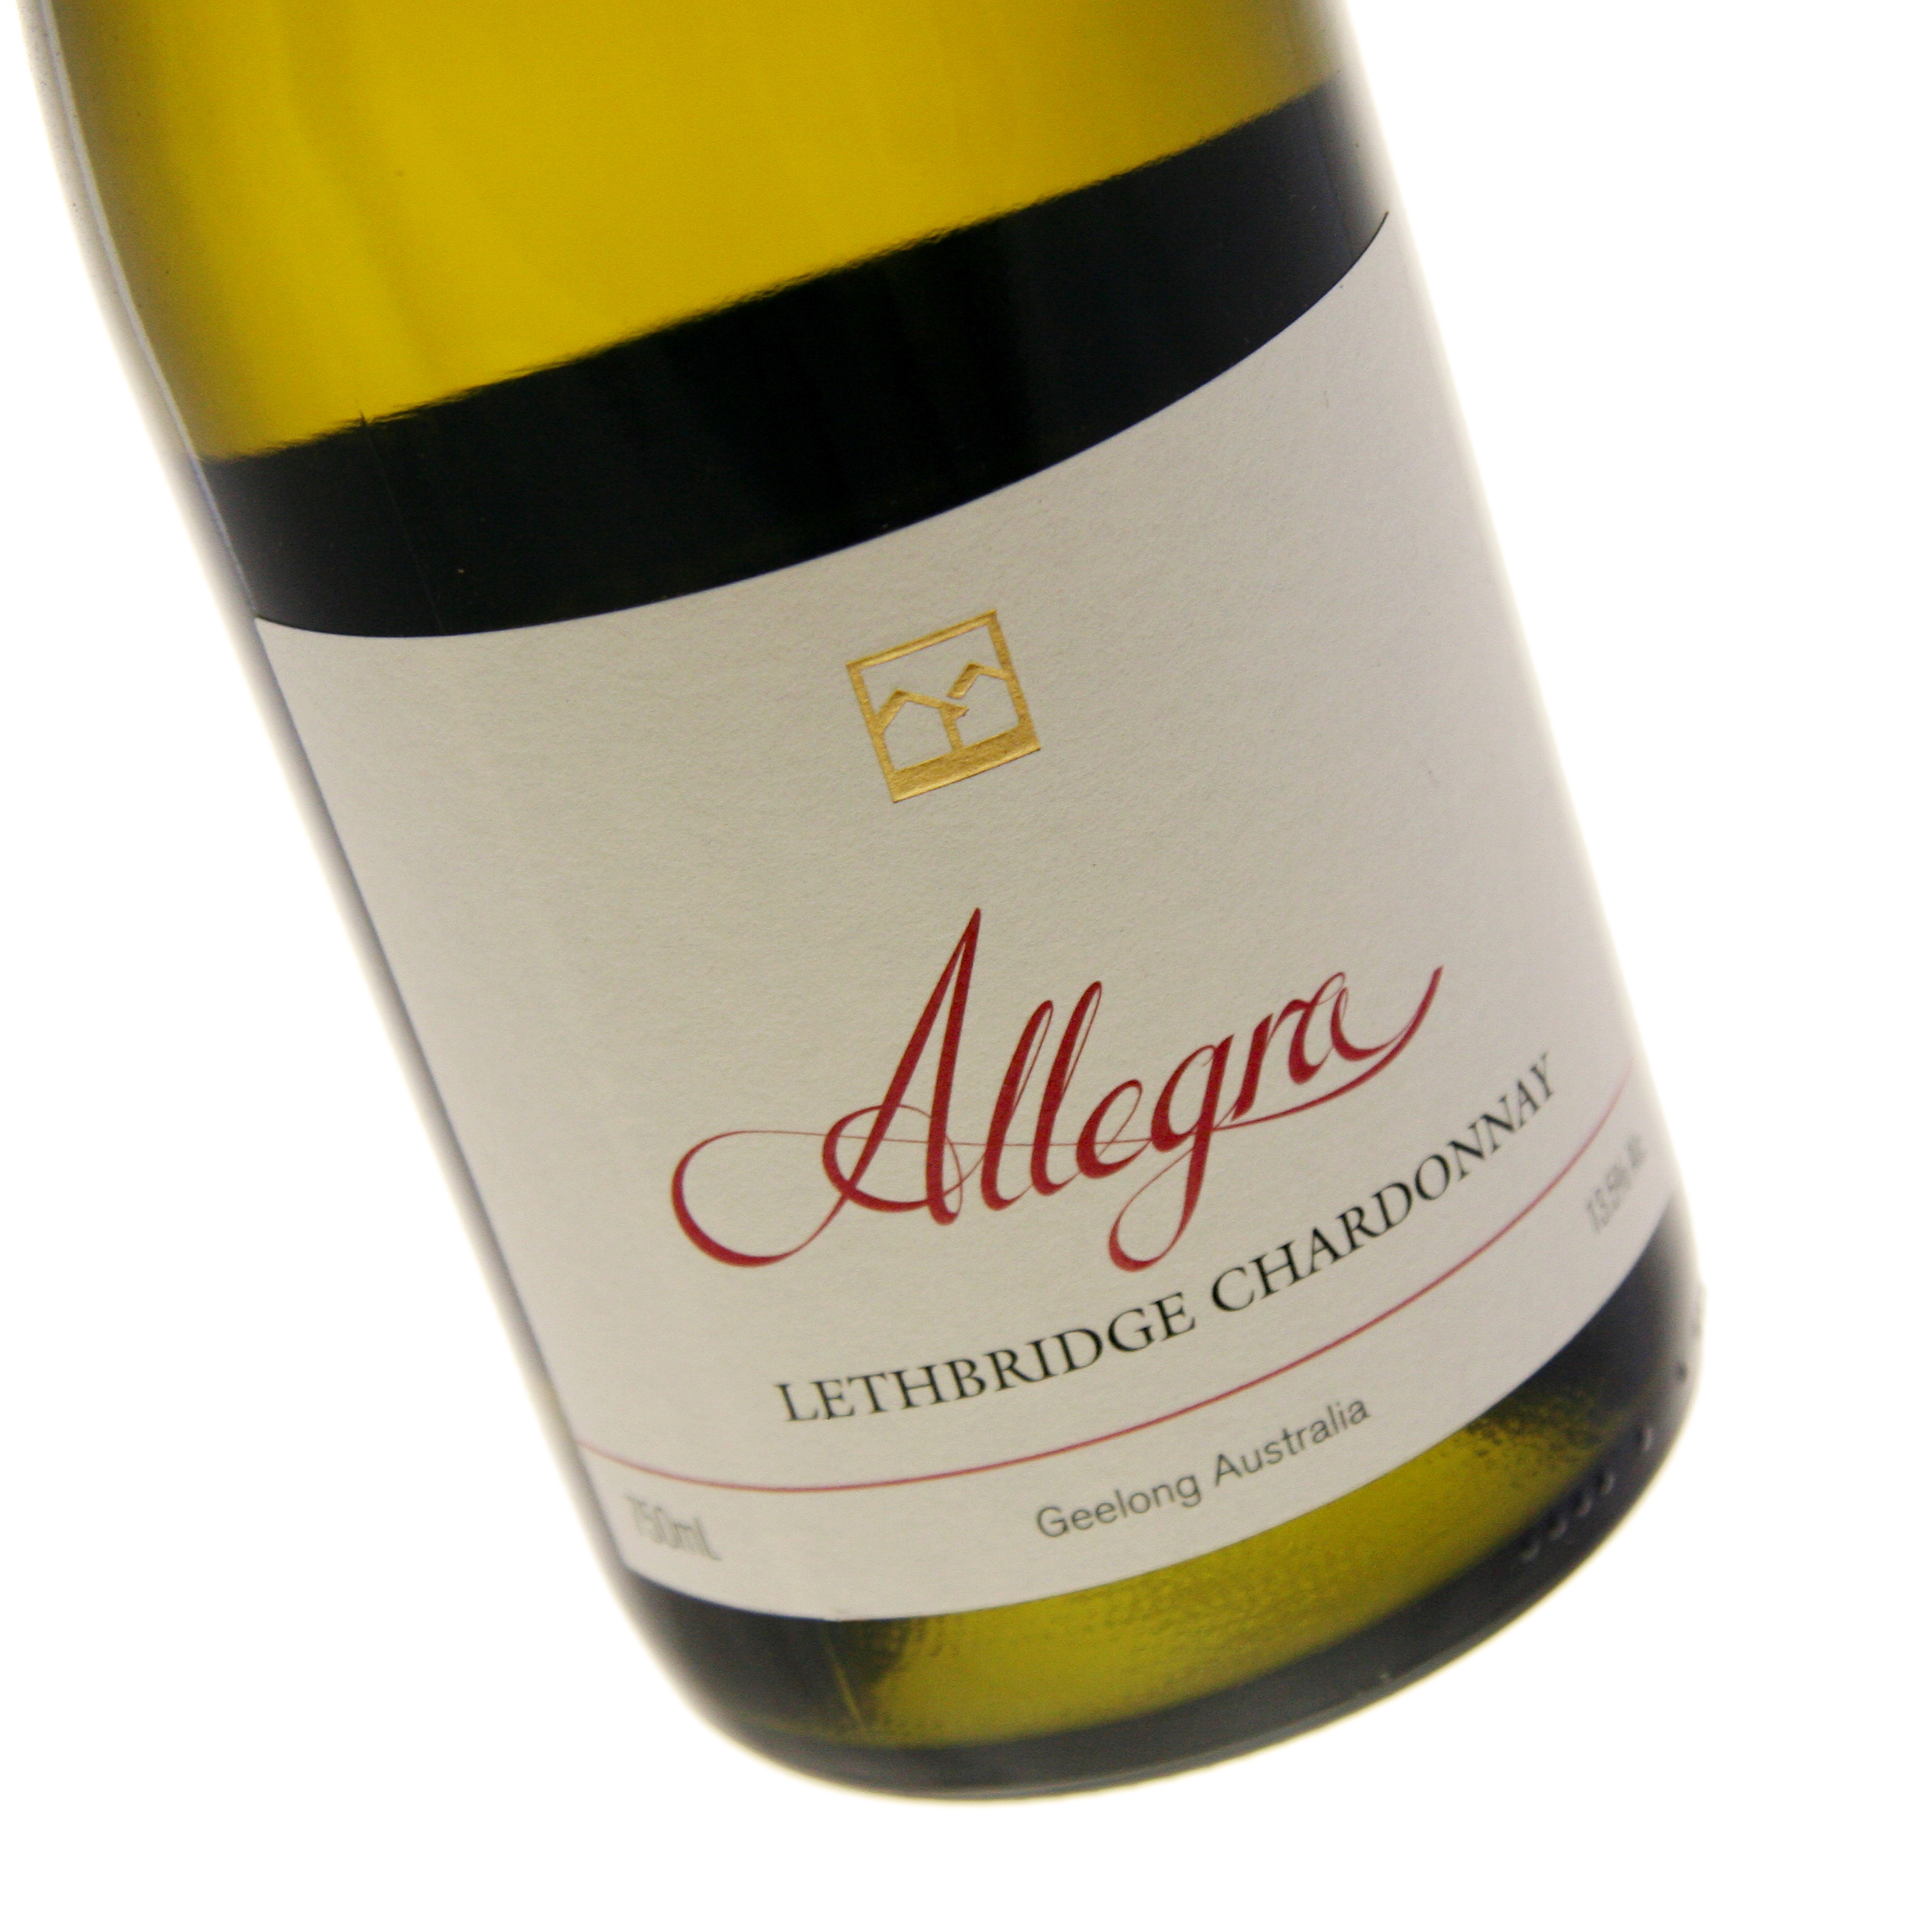 Lethbridge - Allegra Chardonnay 2010 12x 75cl Bottles